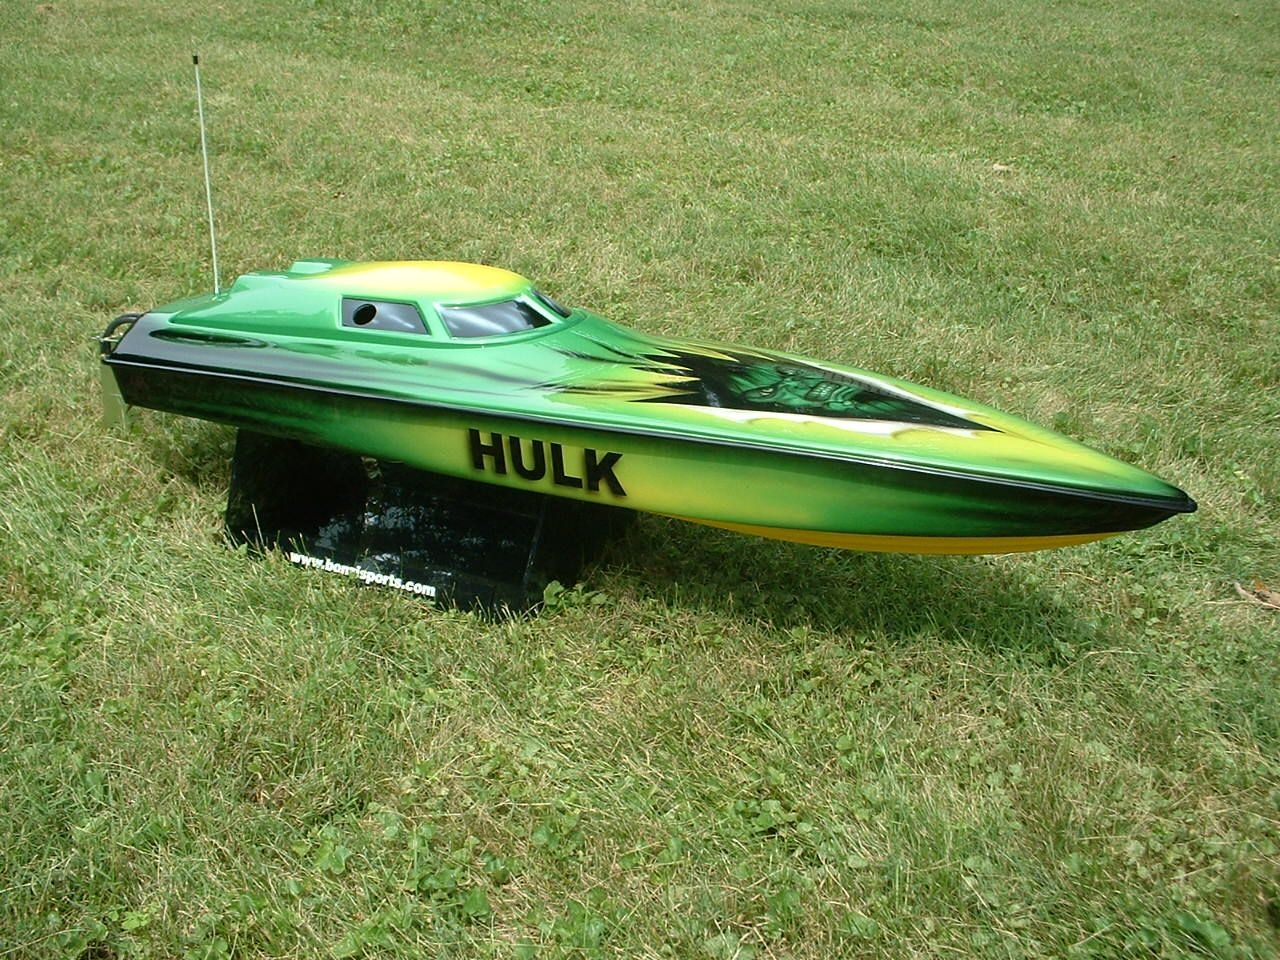 The Hulk RC Boat | Gas rc boats, Boat propellers, Radio ...